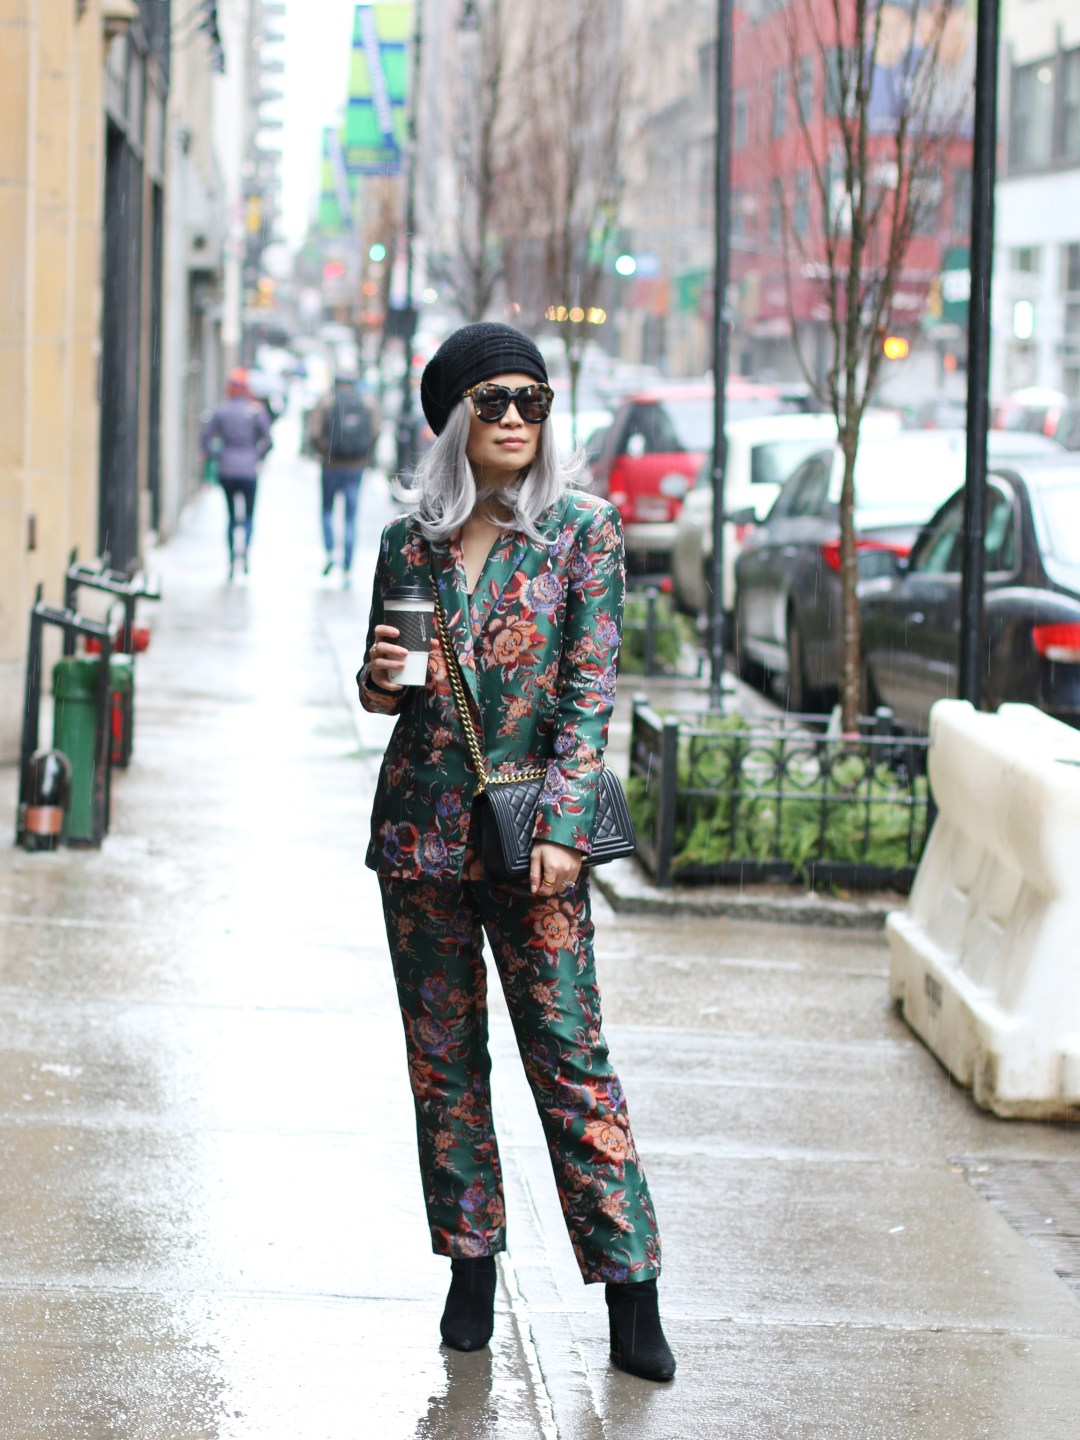 New York Fashion Week Day 4 Outfit, green jacquard floral suit